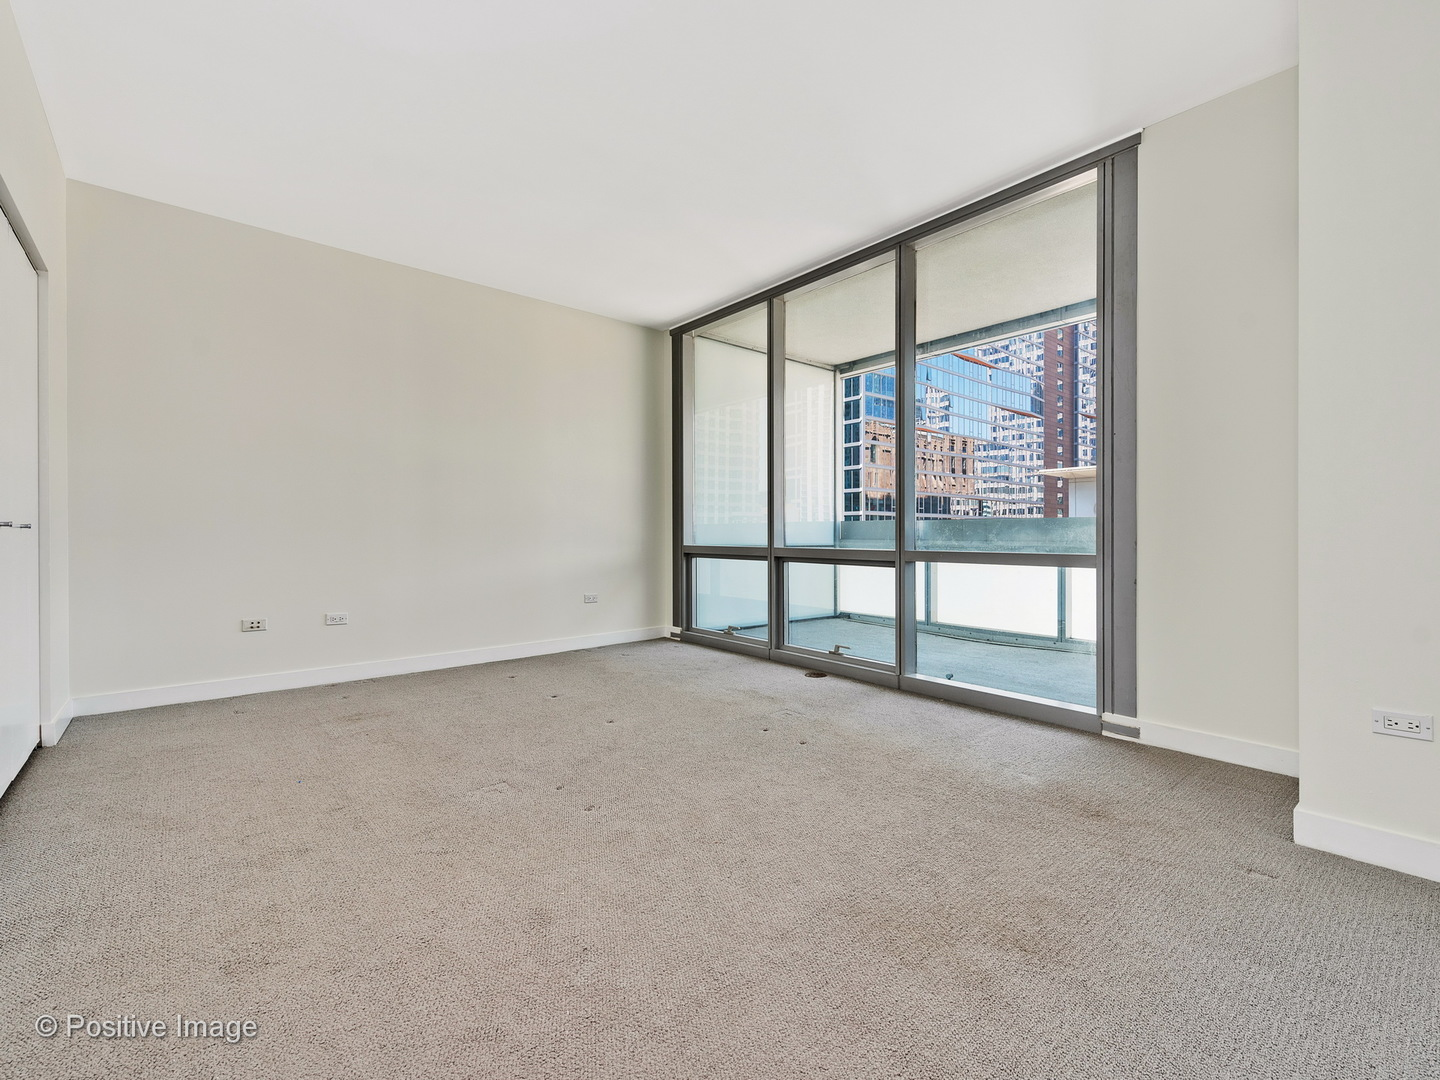 8 East Randolph 1507, Chicago, Illinois, 60601